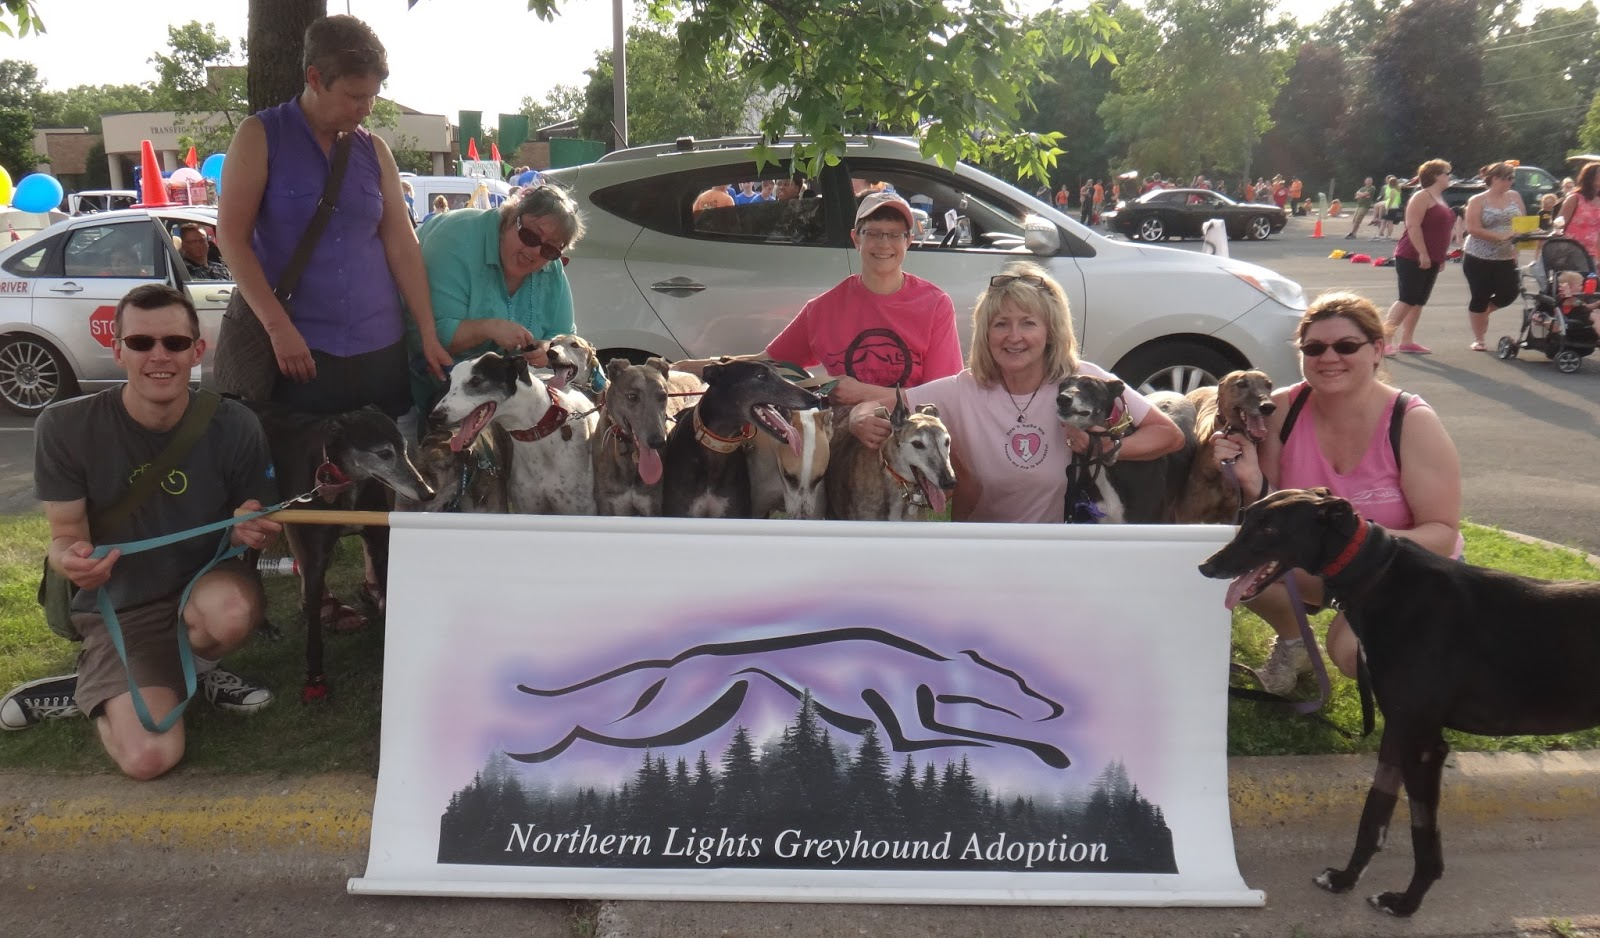 Northern Lights Greyhound Adoption